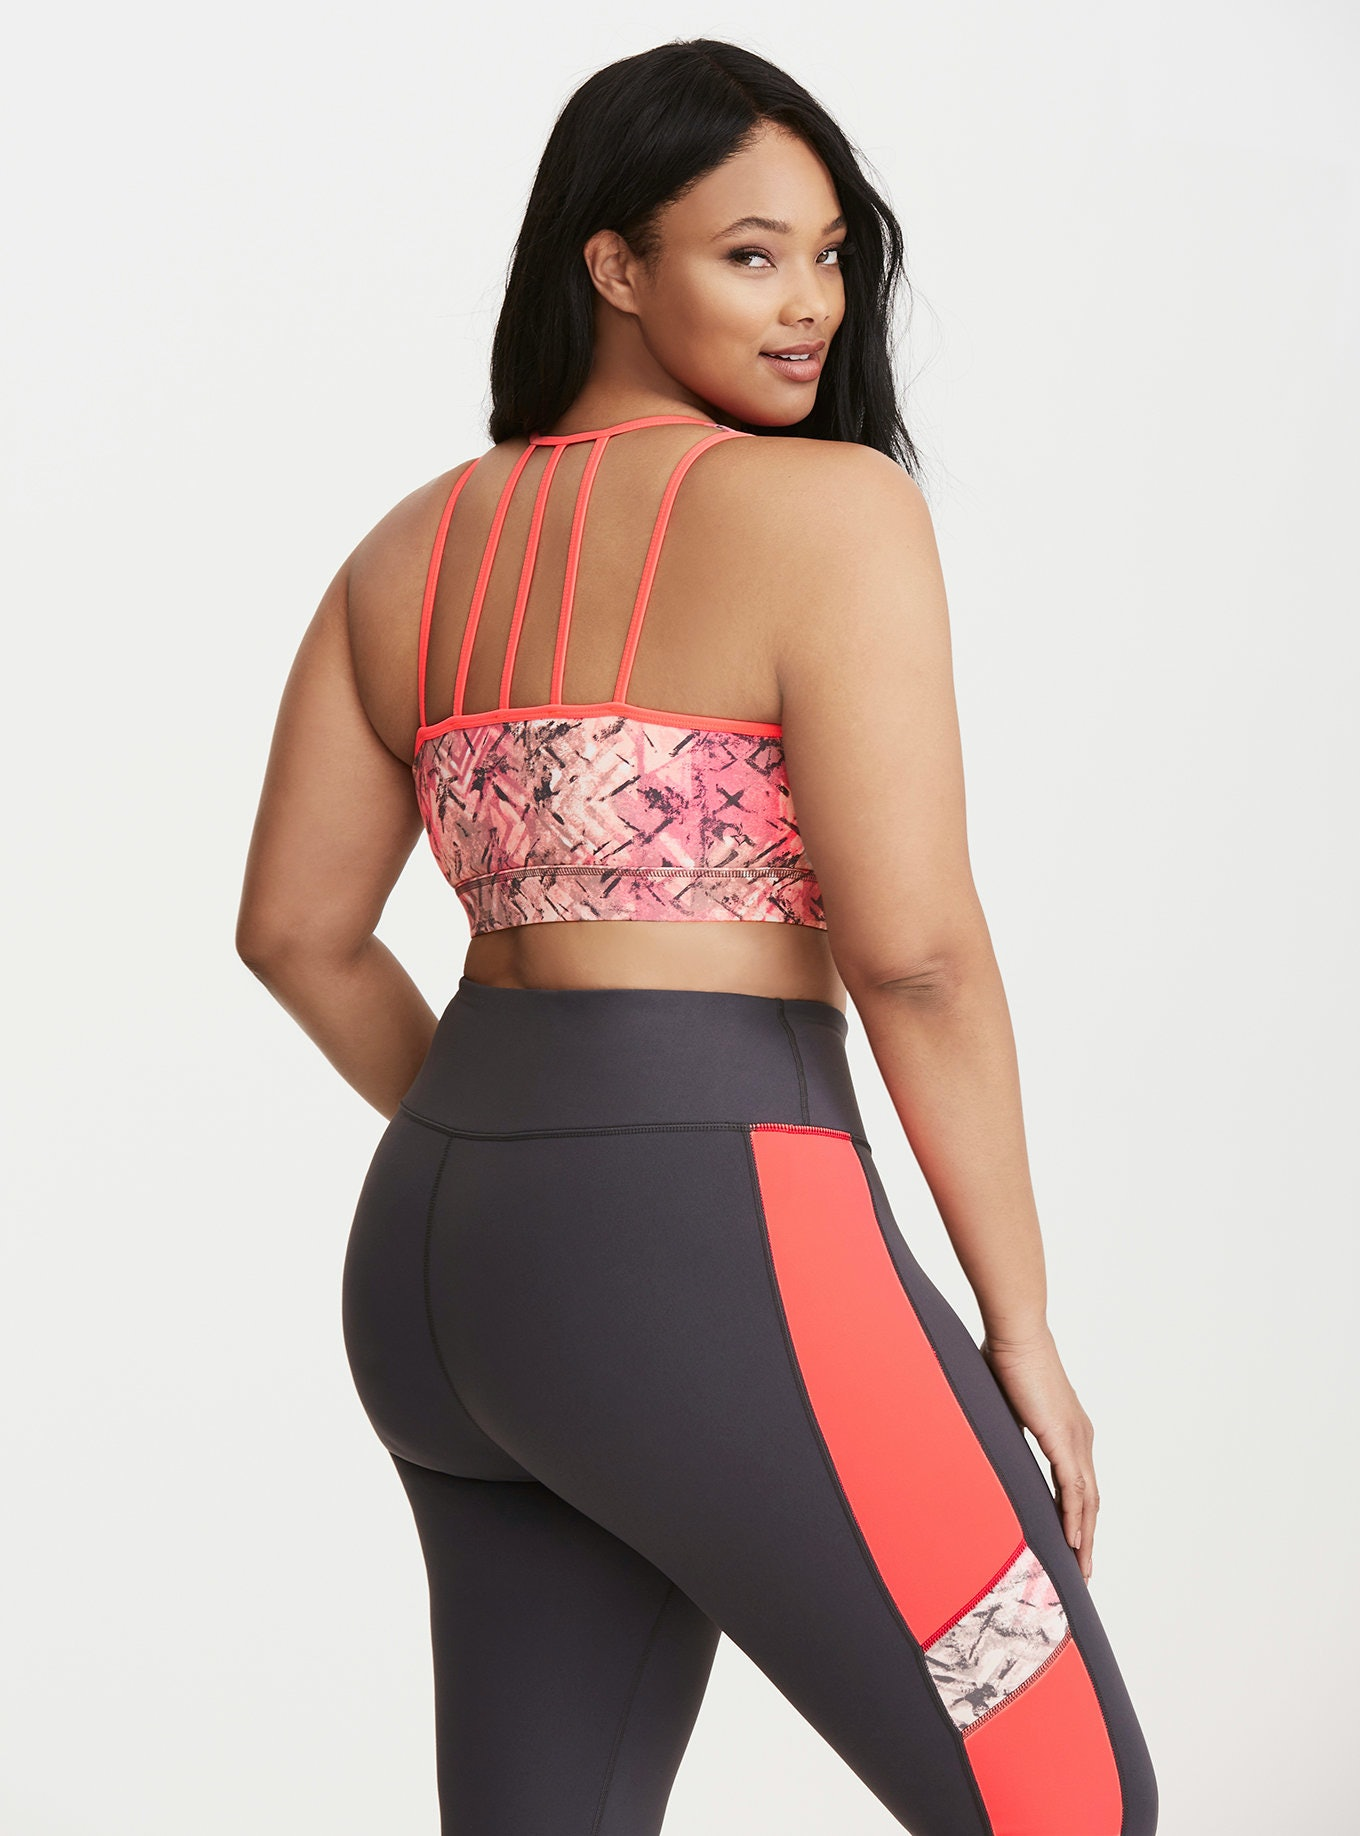 e8a863c5586fa 11 Plus Size Sports Bras That Are Actually Comfortable